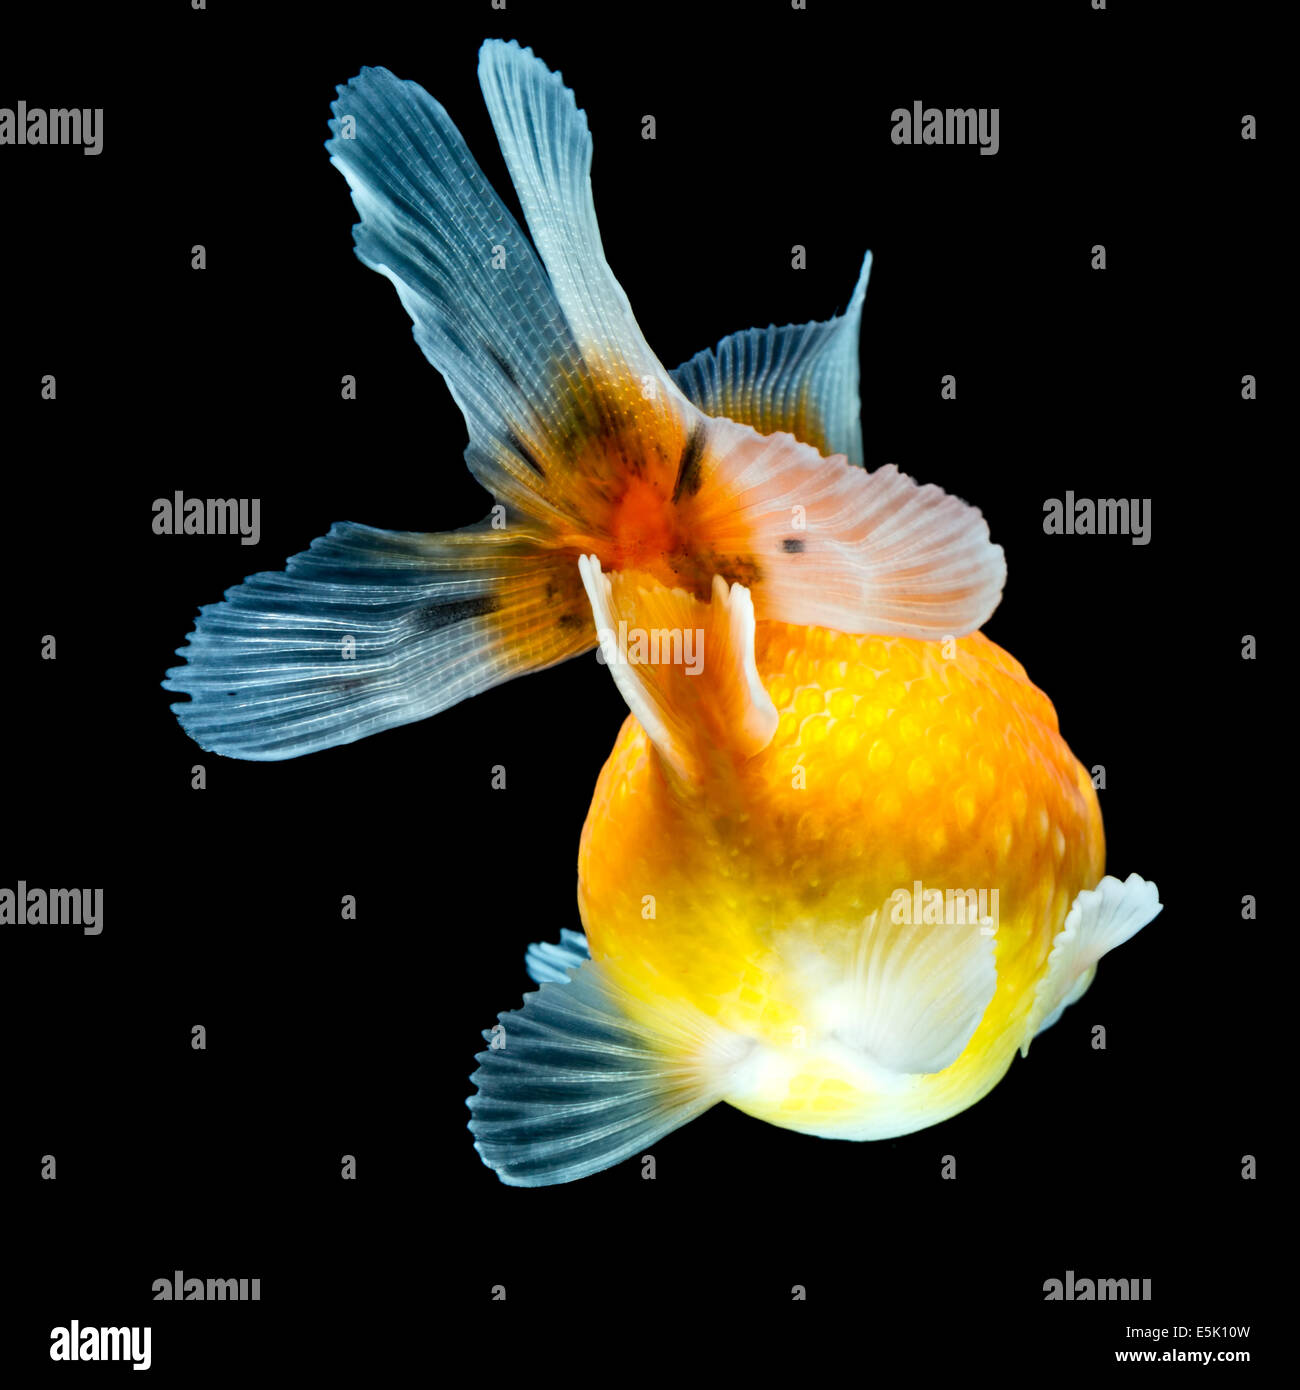 Pearlscale Goldfish Isolated On Black High Quality Studio Shot Manually Removed From Background So The Finnage Is Stock Photo